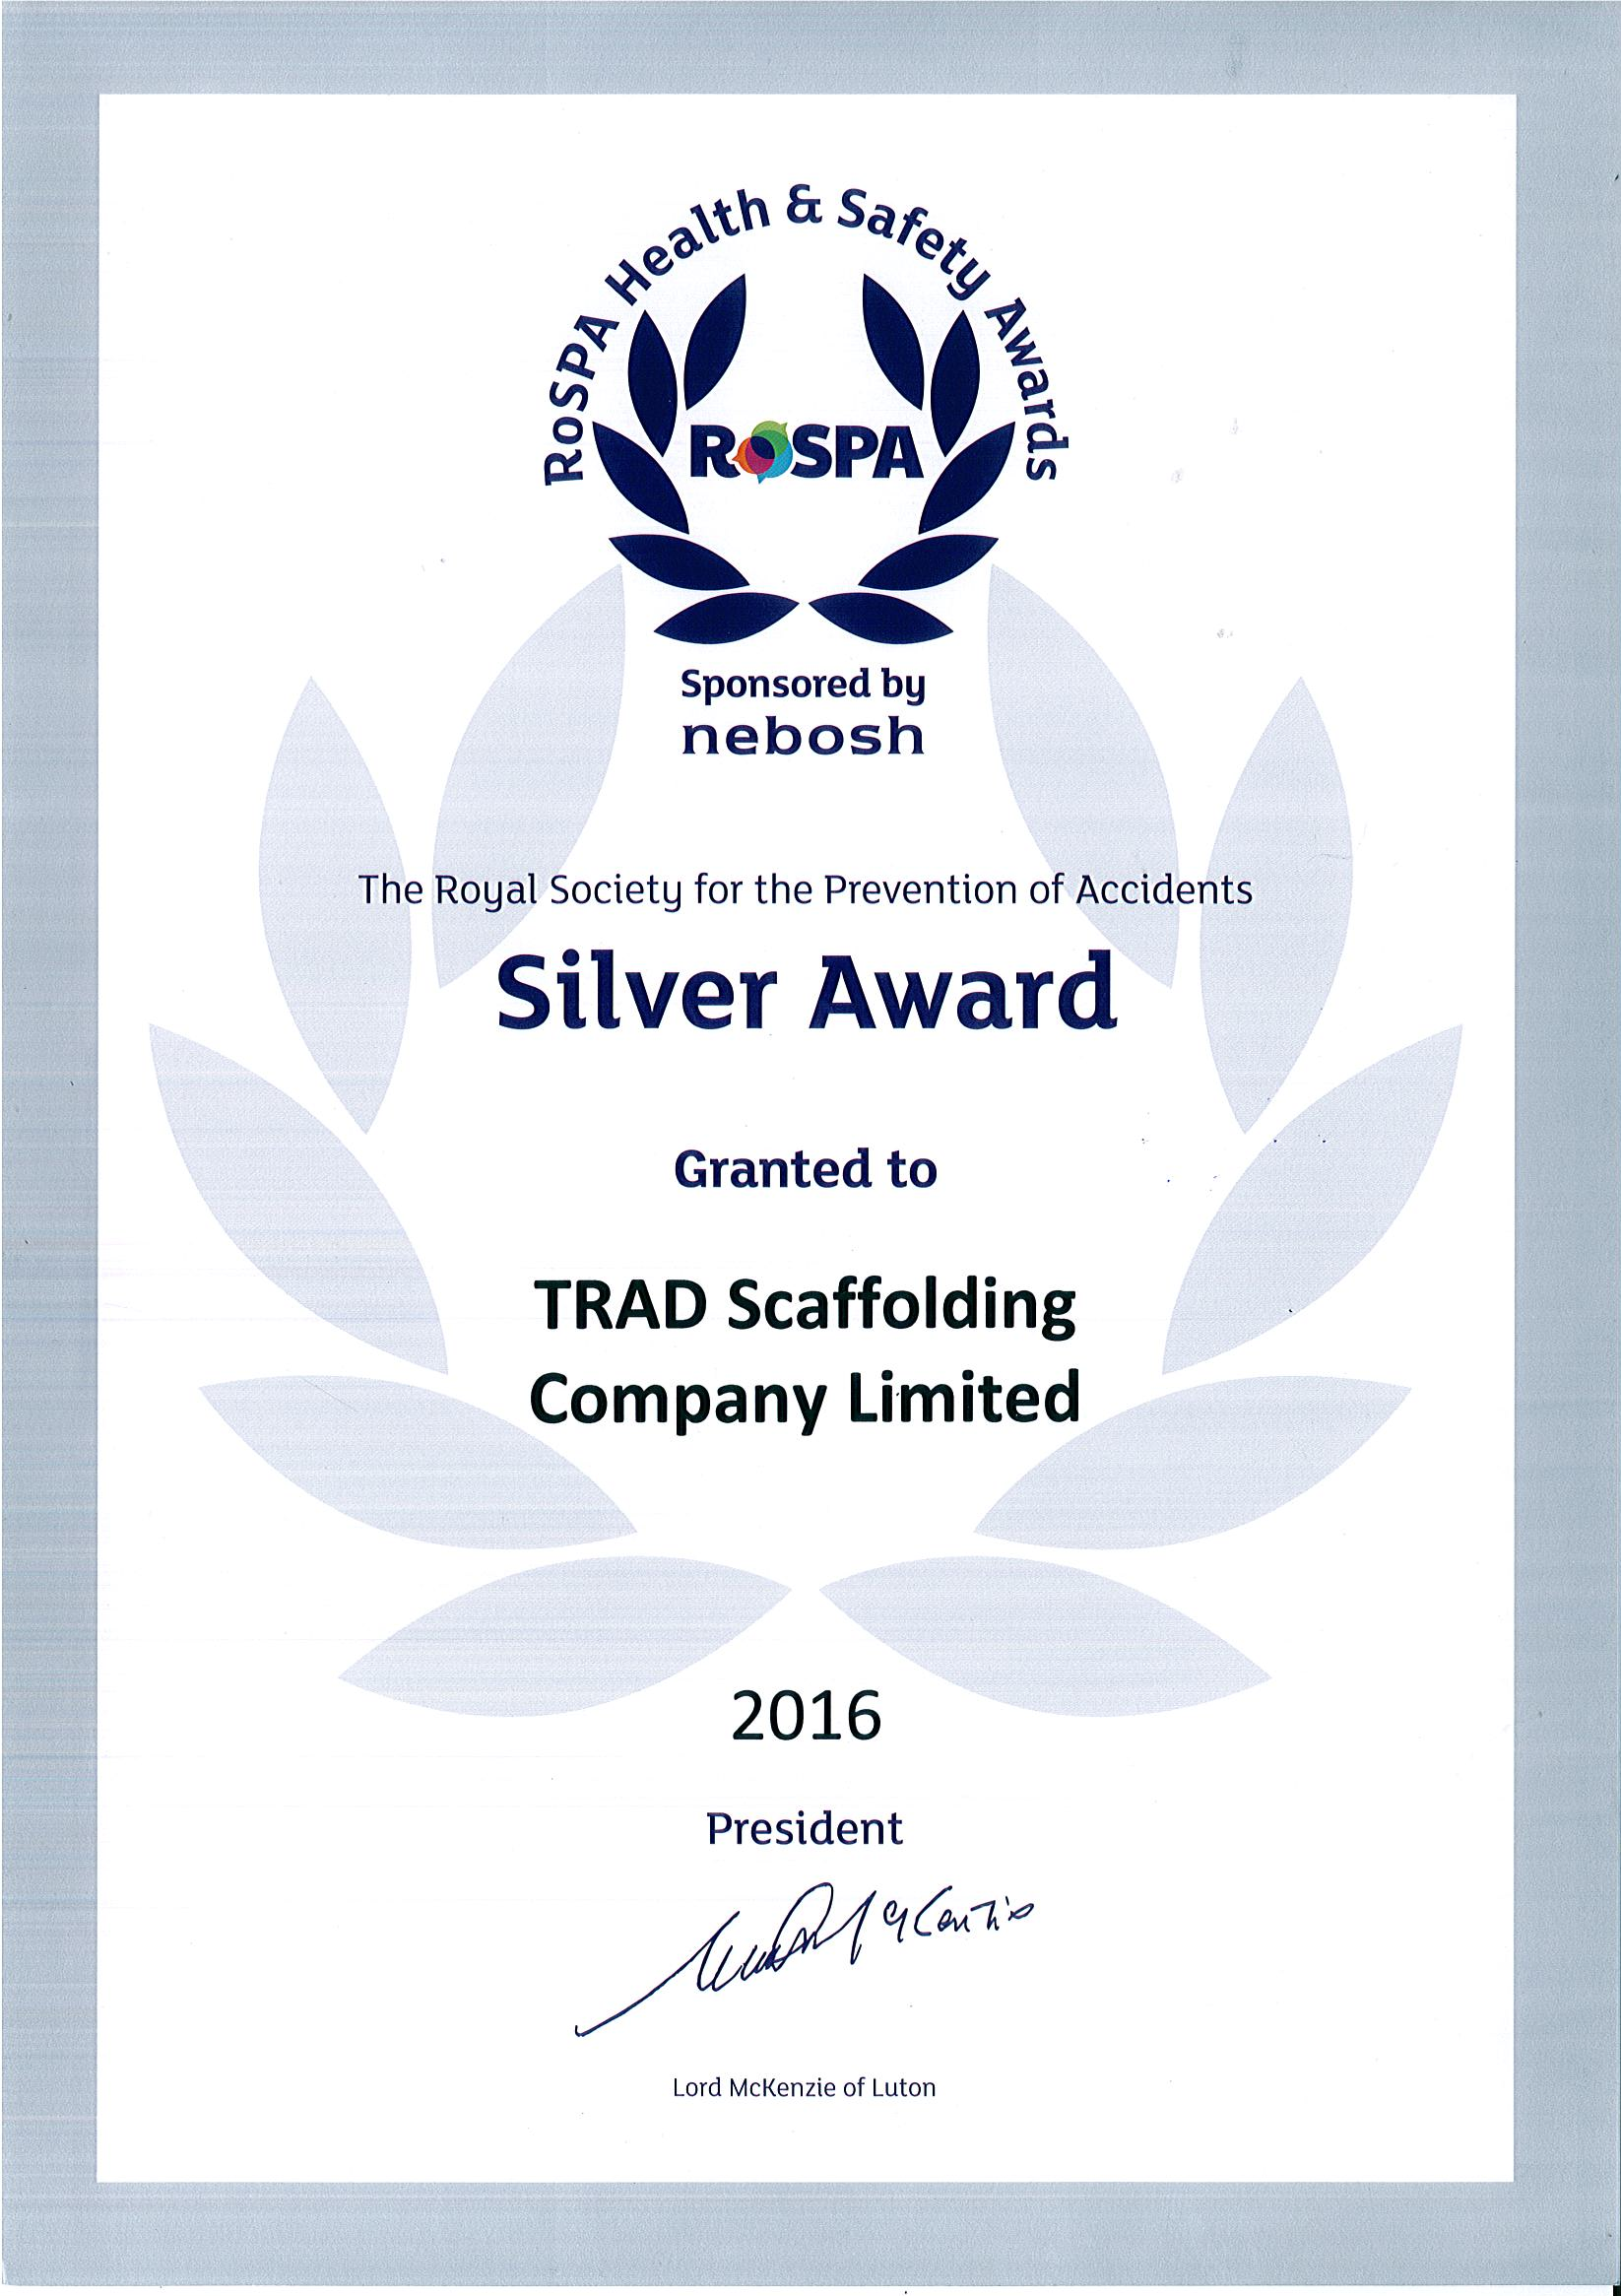 ROSPA Silver Award for Health & Safety